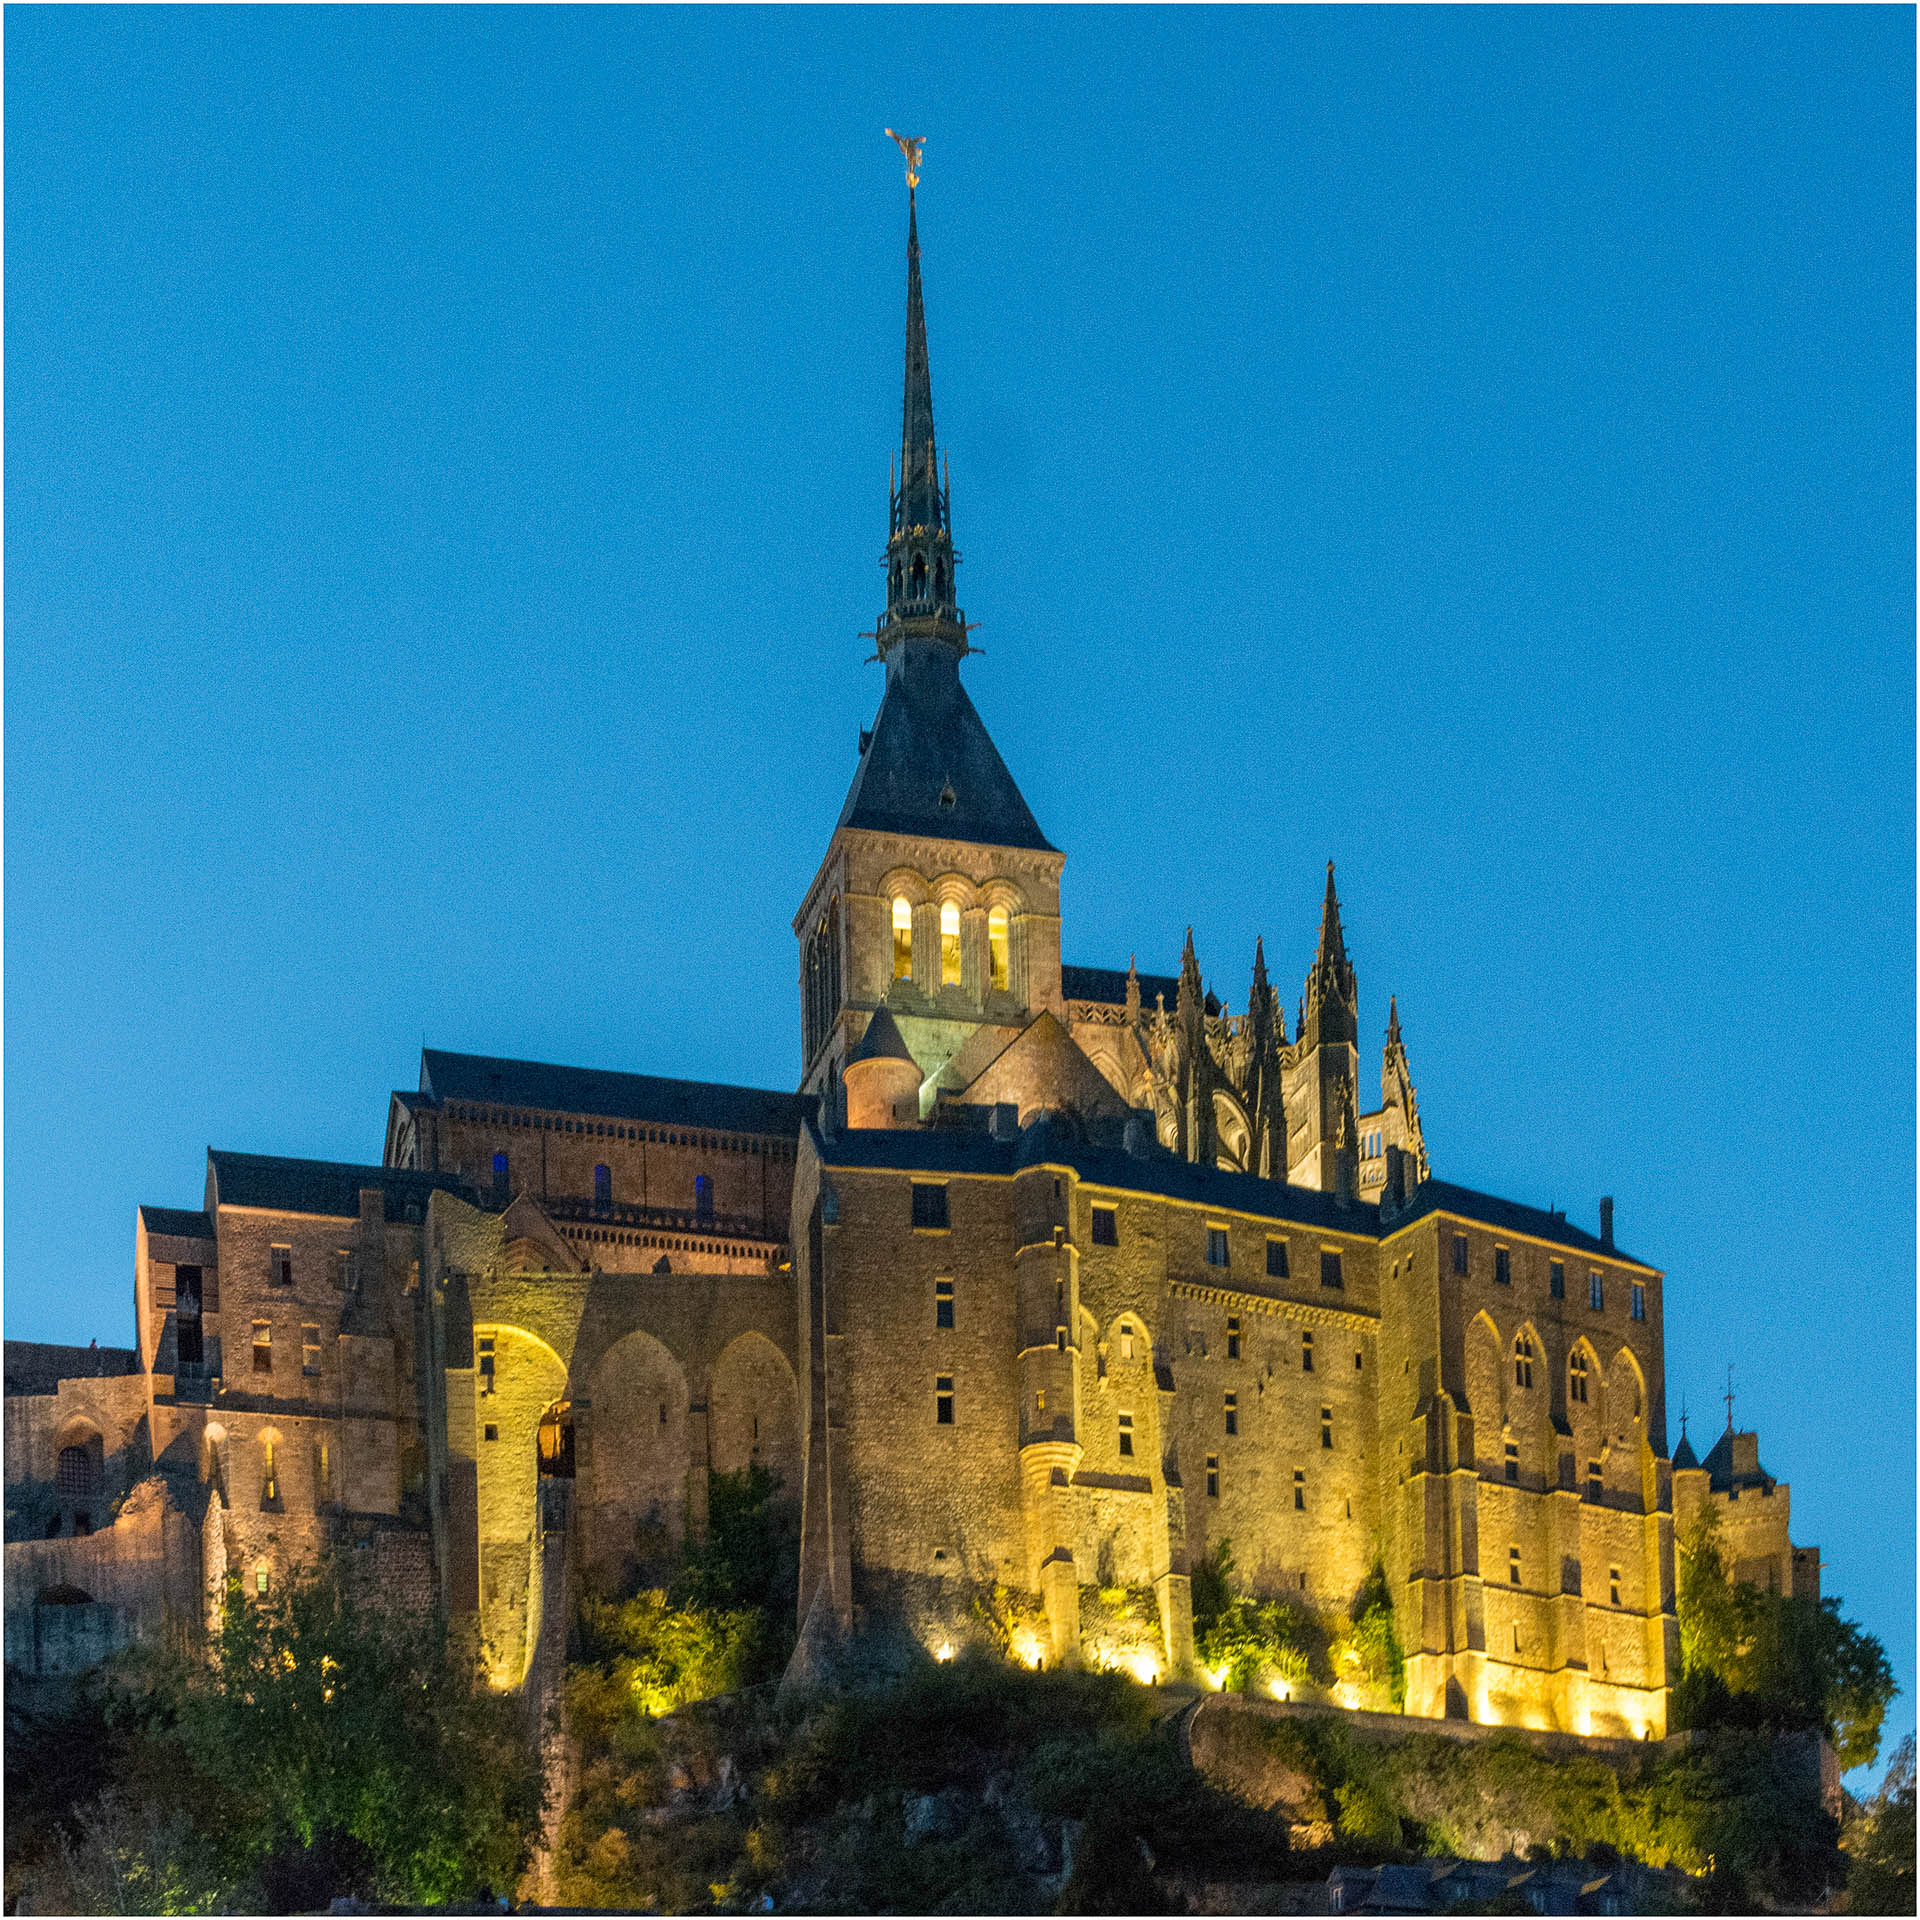 Mont Saint Michel Abbey - Digital (Artificial Light) - Name Withheld Per Request